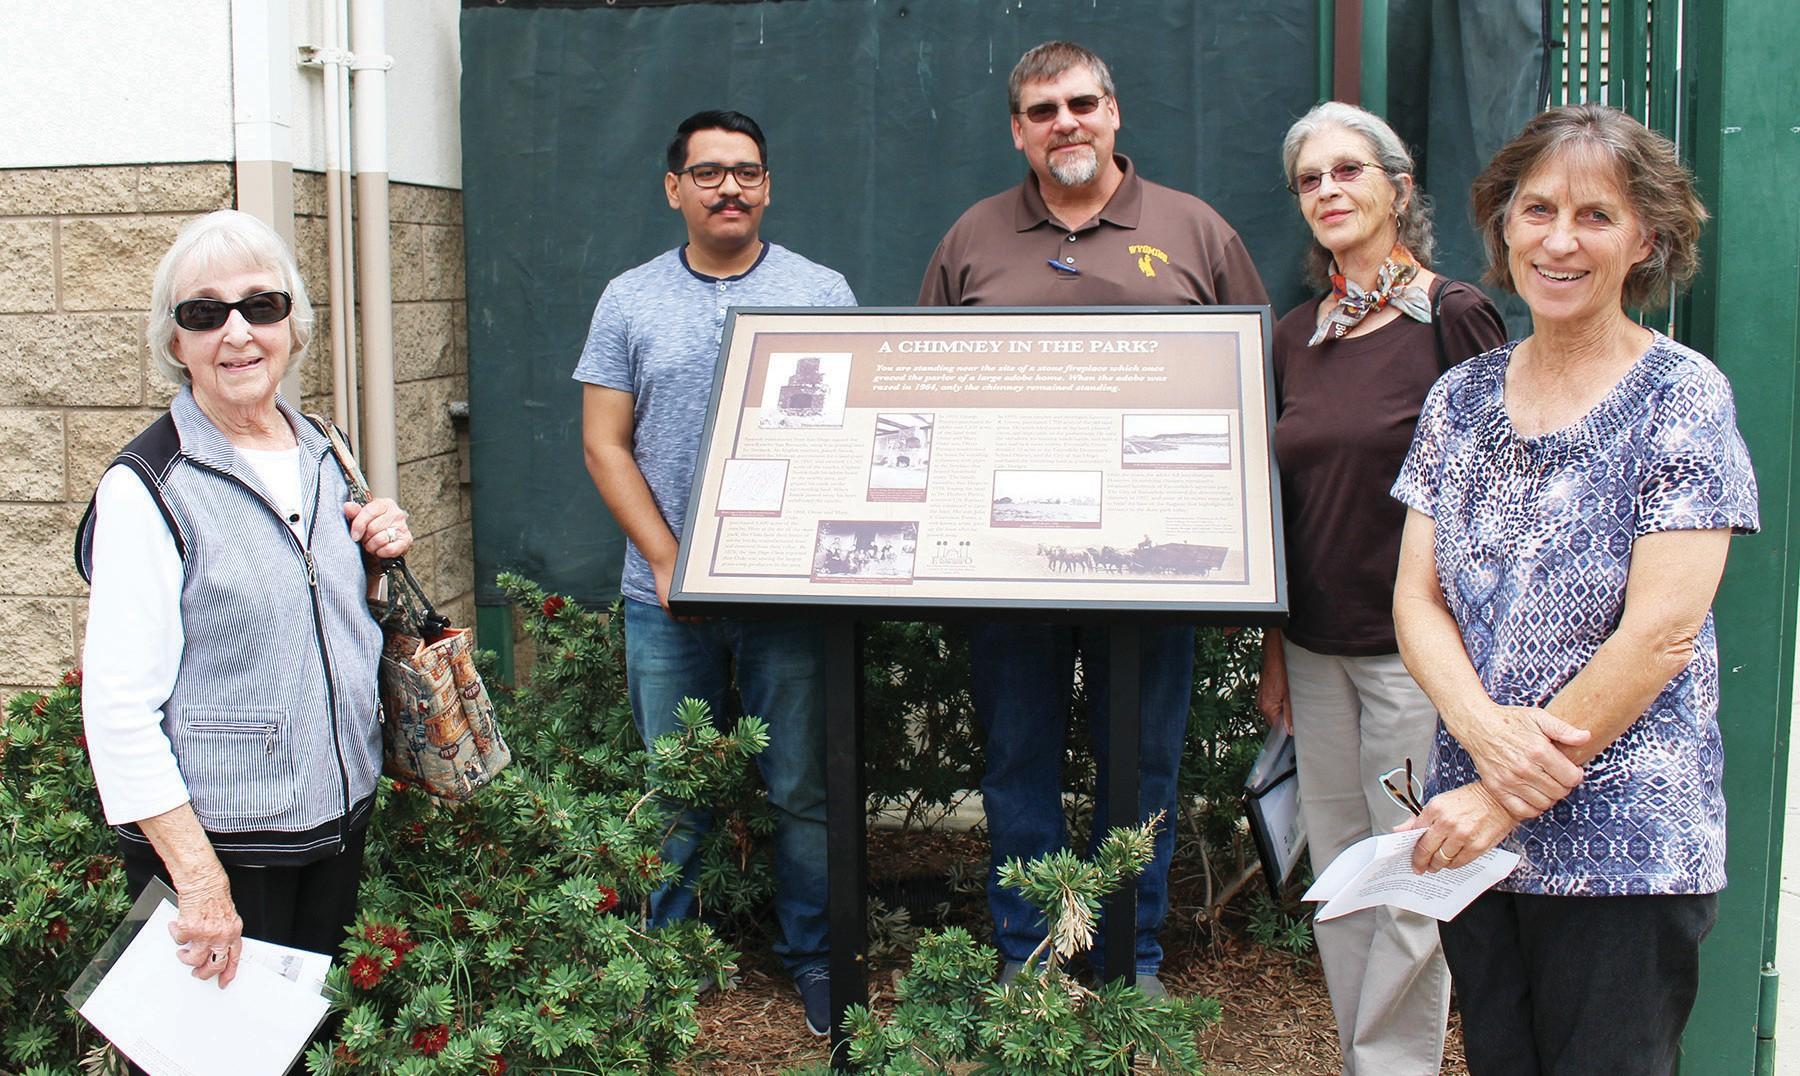 "Posing with the new ""A Chimney in the Park"" interpretative sign are (from left) Ruth Collings, Carlos Tirado, Dan Young, park superintendent, Julie Johnson Lavelli, a Porter granddaughter (the Porters being the family that donated the land for Kit Carson Park to the city) and Alexa Clausen, who spear-headed the effort to install the interpretative sign near the flagpole of the park's main building complex."